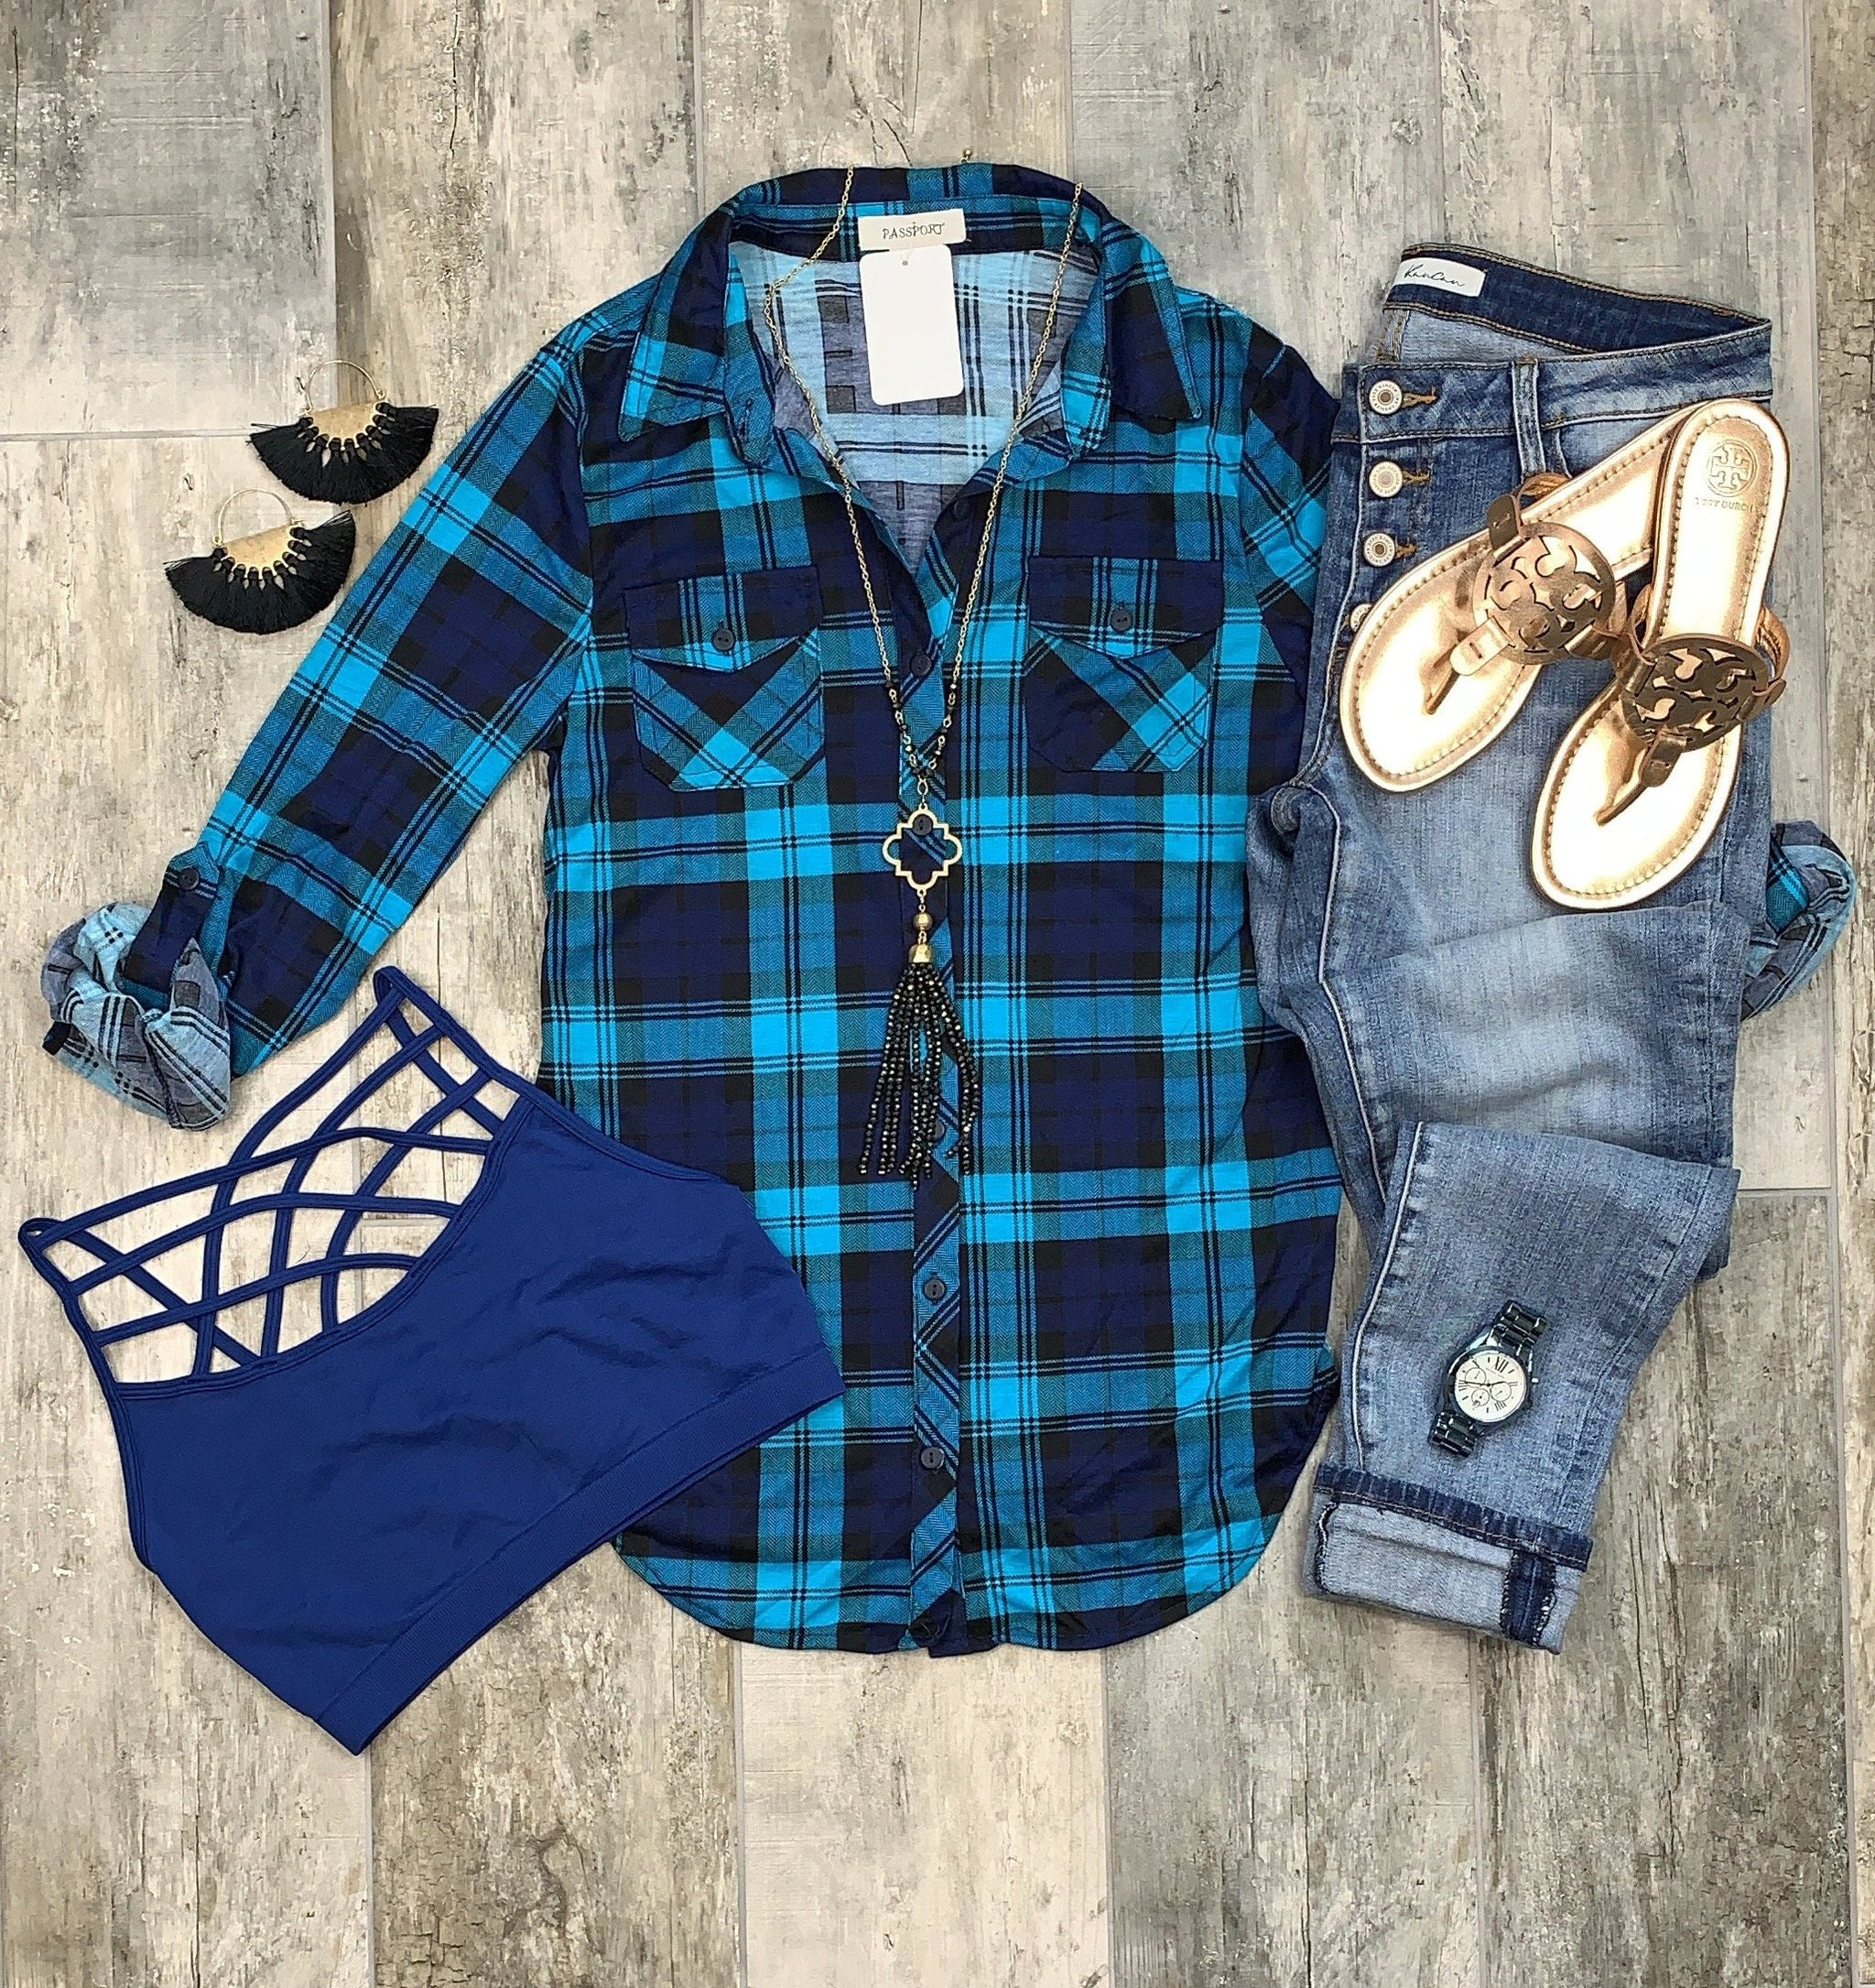 Penny Plaid Flannel Top: Navy/Teal